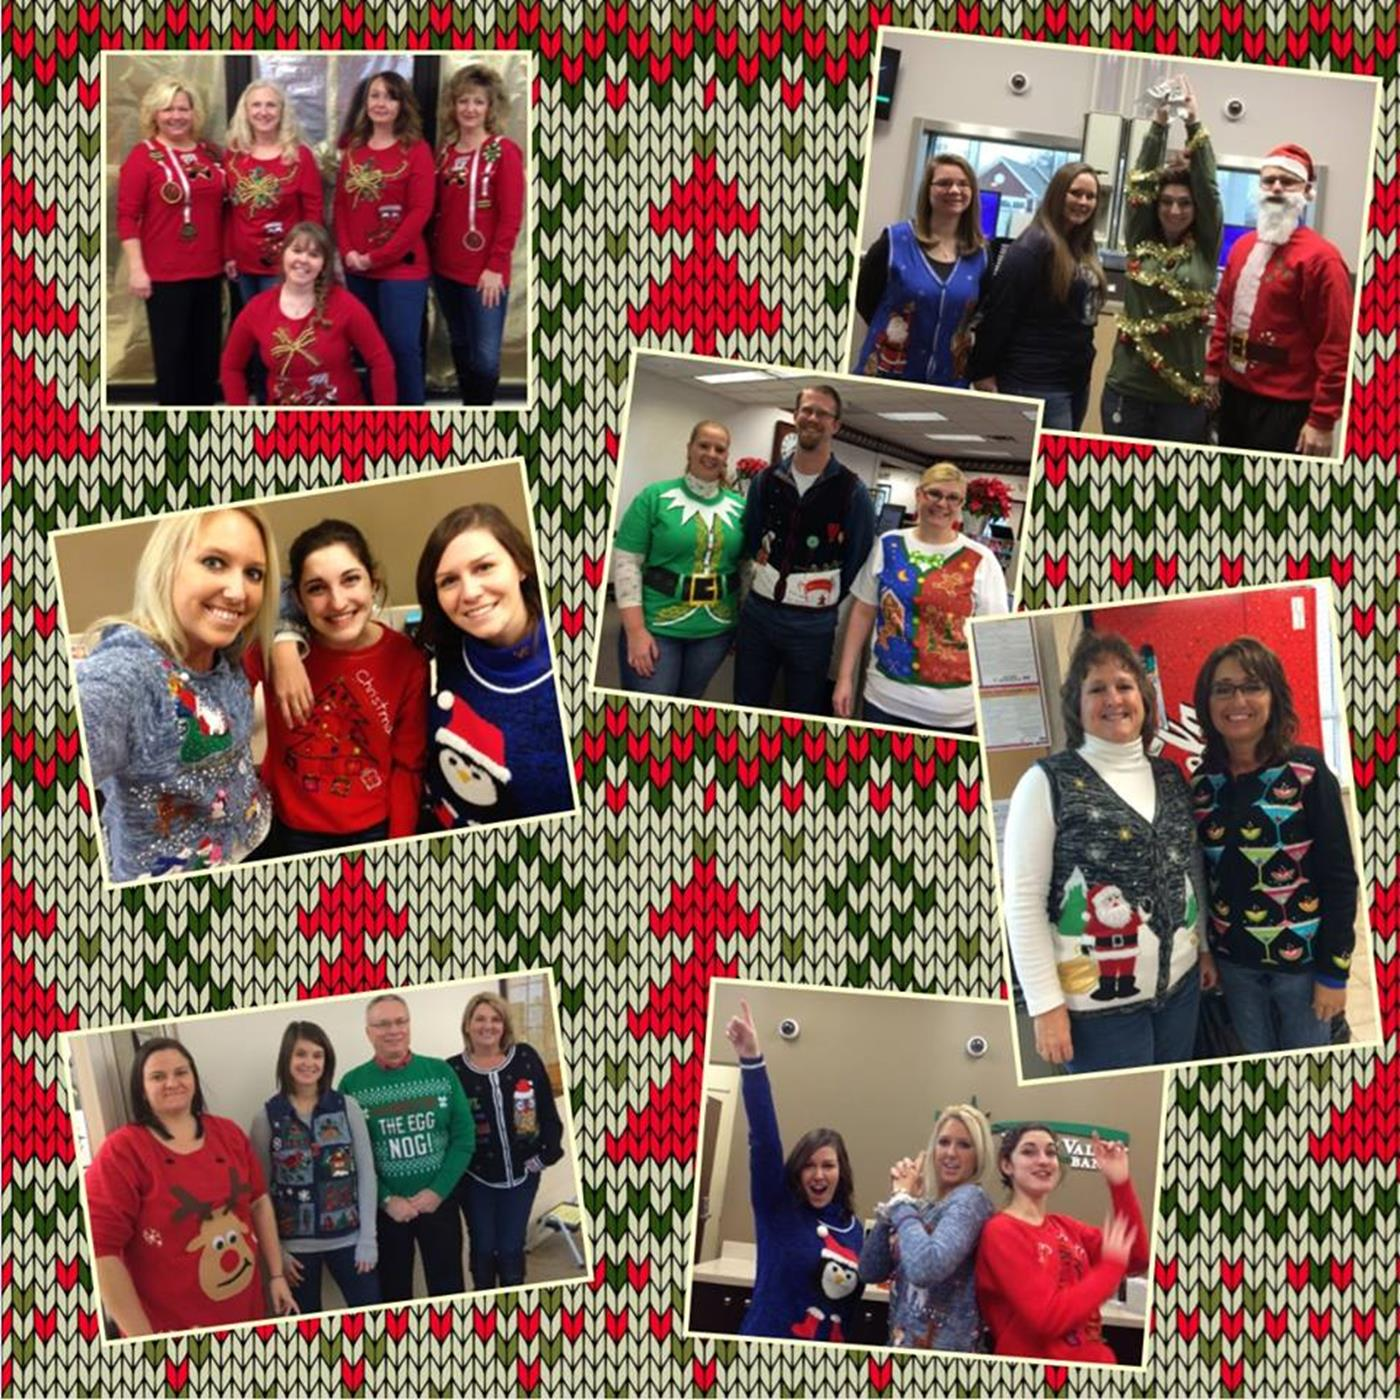 North Valley Bank Ugly Sweater Day